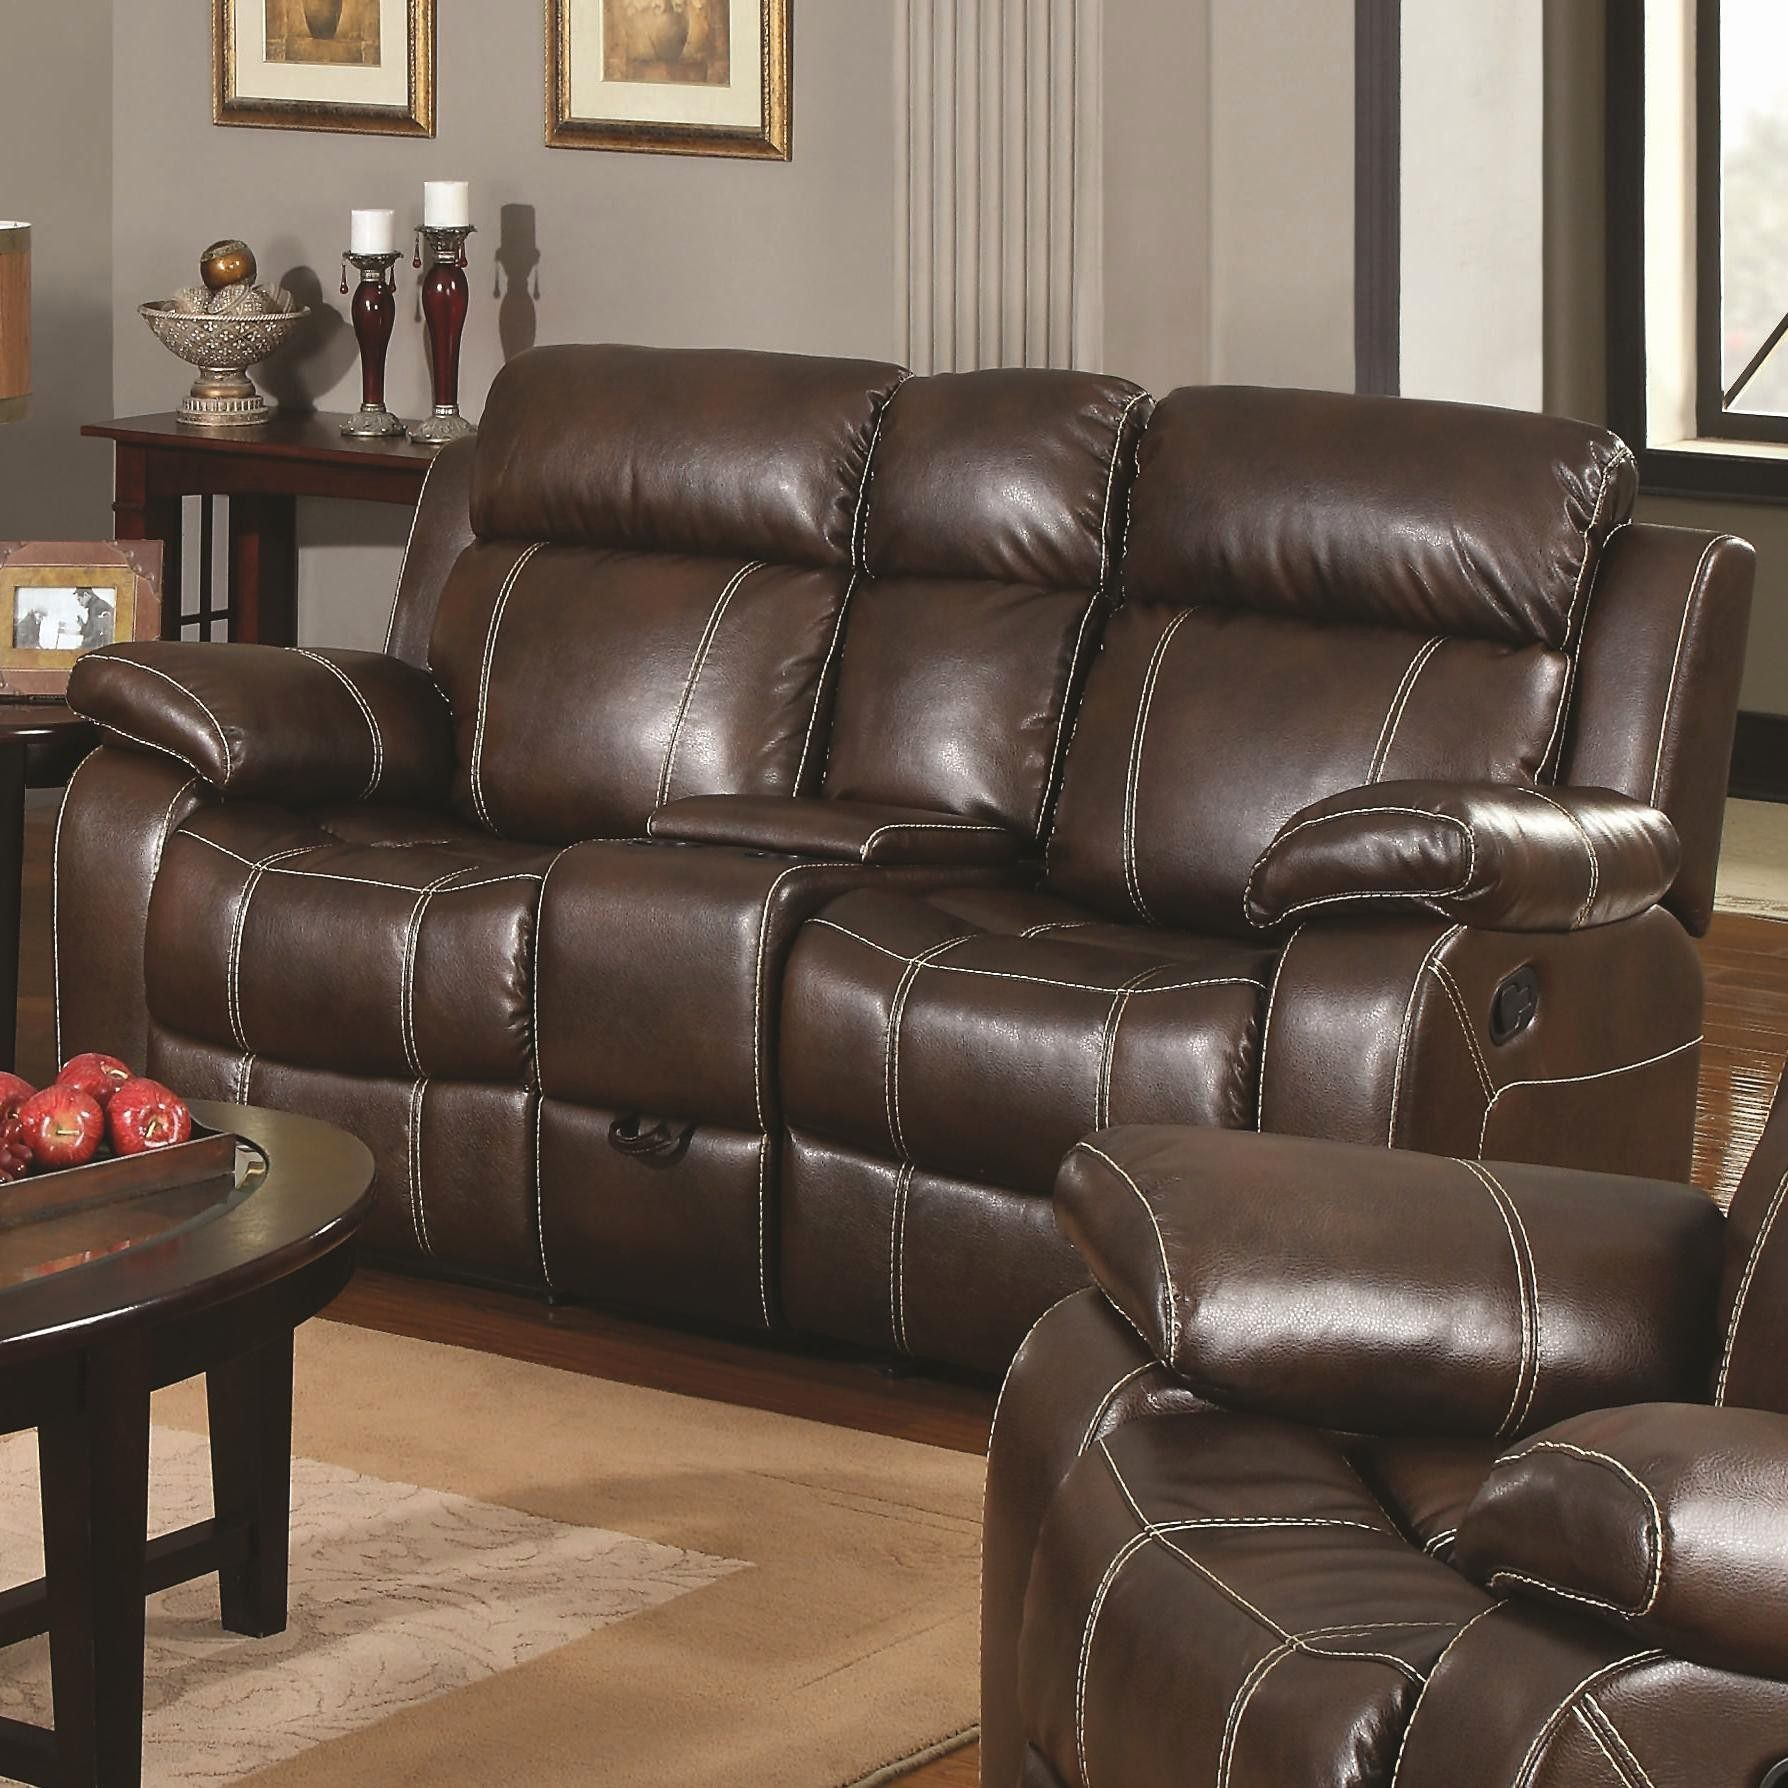 Beautiful Leather Reclining Sofa And Loveseat Set Images Nice Reclining Sofa Loveseat Fancy Sofa And Loveseat Set Leather Reclining Loveseat Couch And Loveseat